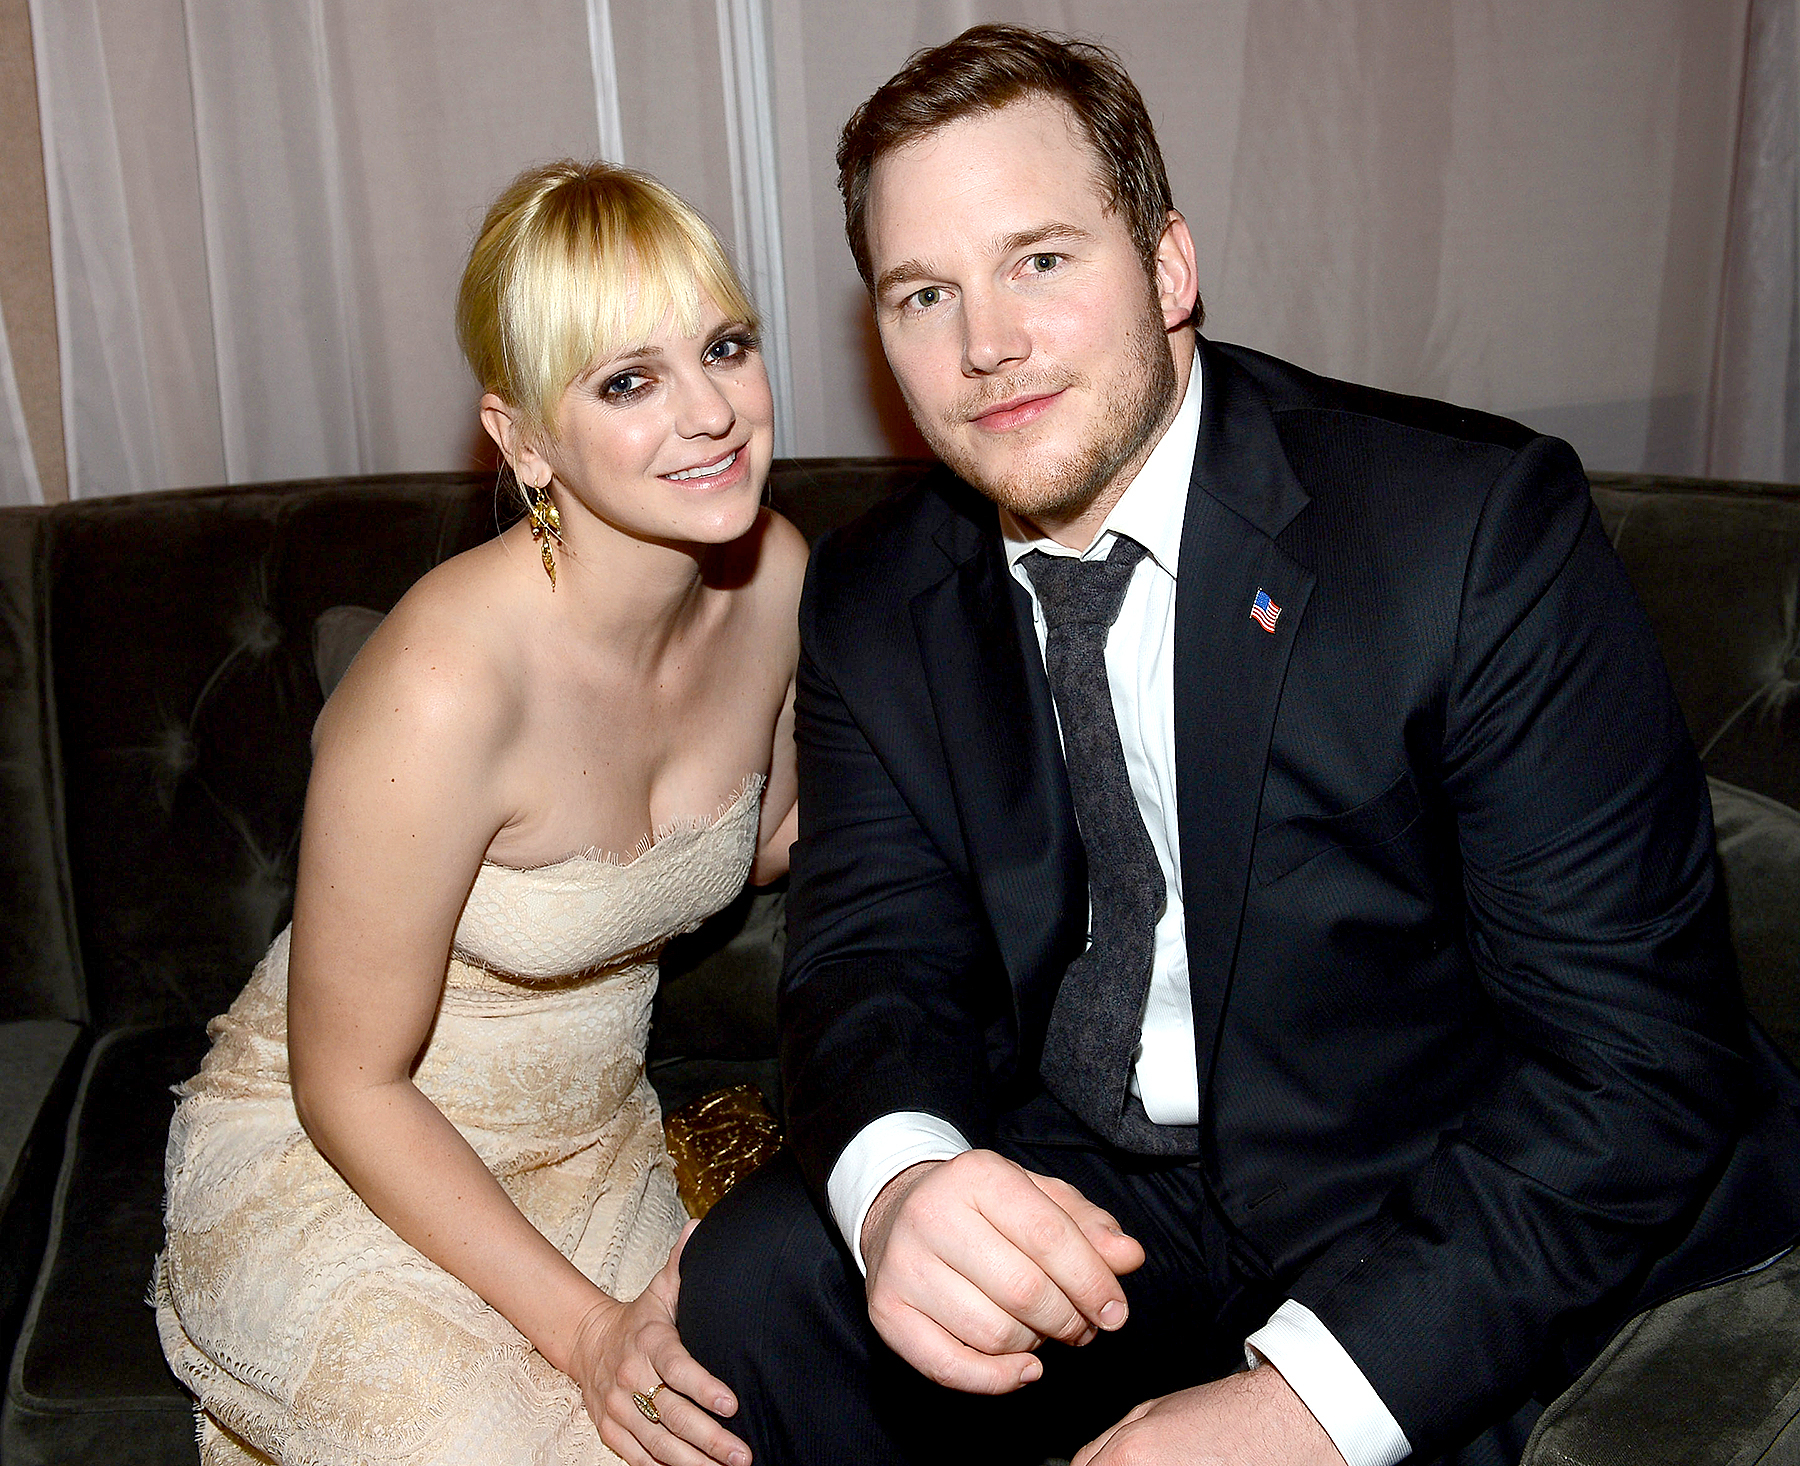 """Anna Faris and Chris Pratt attend the after party for the premiere of Columbia Pictures' """"Zero Dark Thirty"""" at the Dolby Theatre on December 10, 2012 in Hollywood, California."""